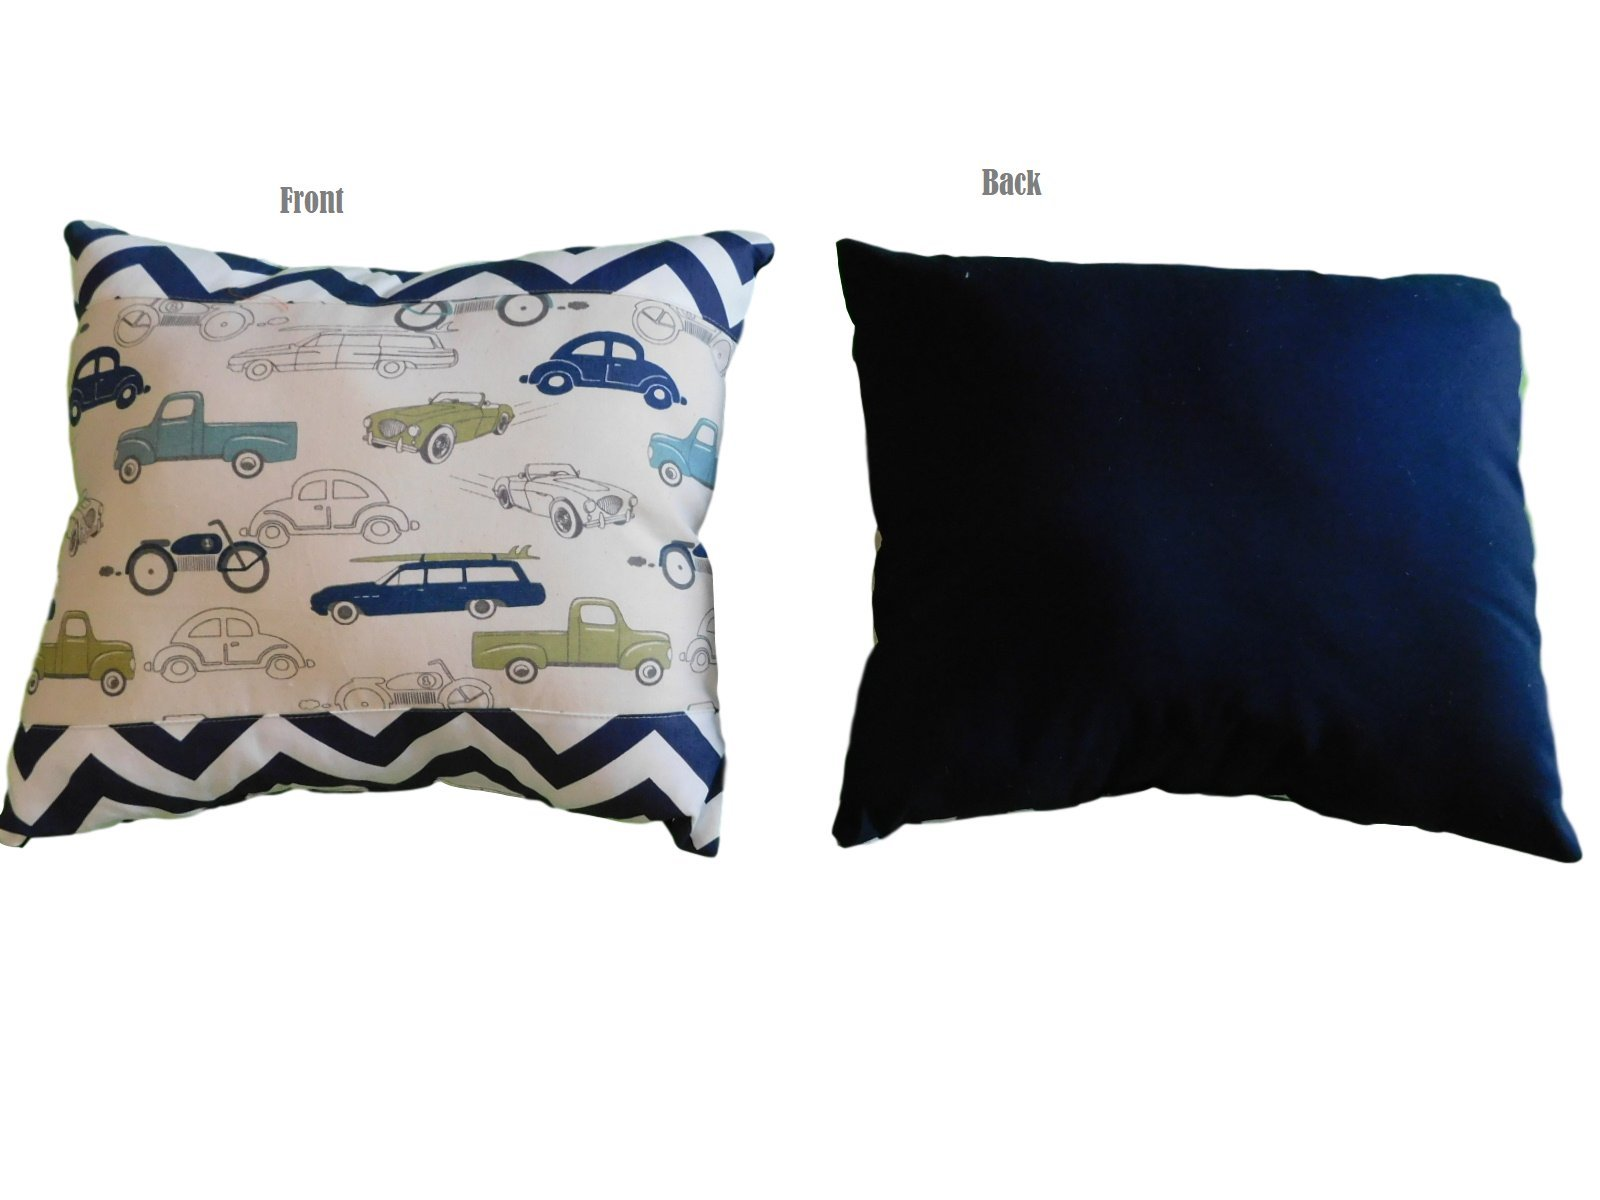 Cars and blue chevron PILLOW Size 16''x 18'', throw pillow, neck or travel , bed , sofa, dorm , chair decor. Hypoallergenic ,boys, washable. Ready to use. Sale.